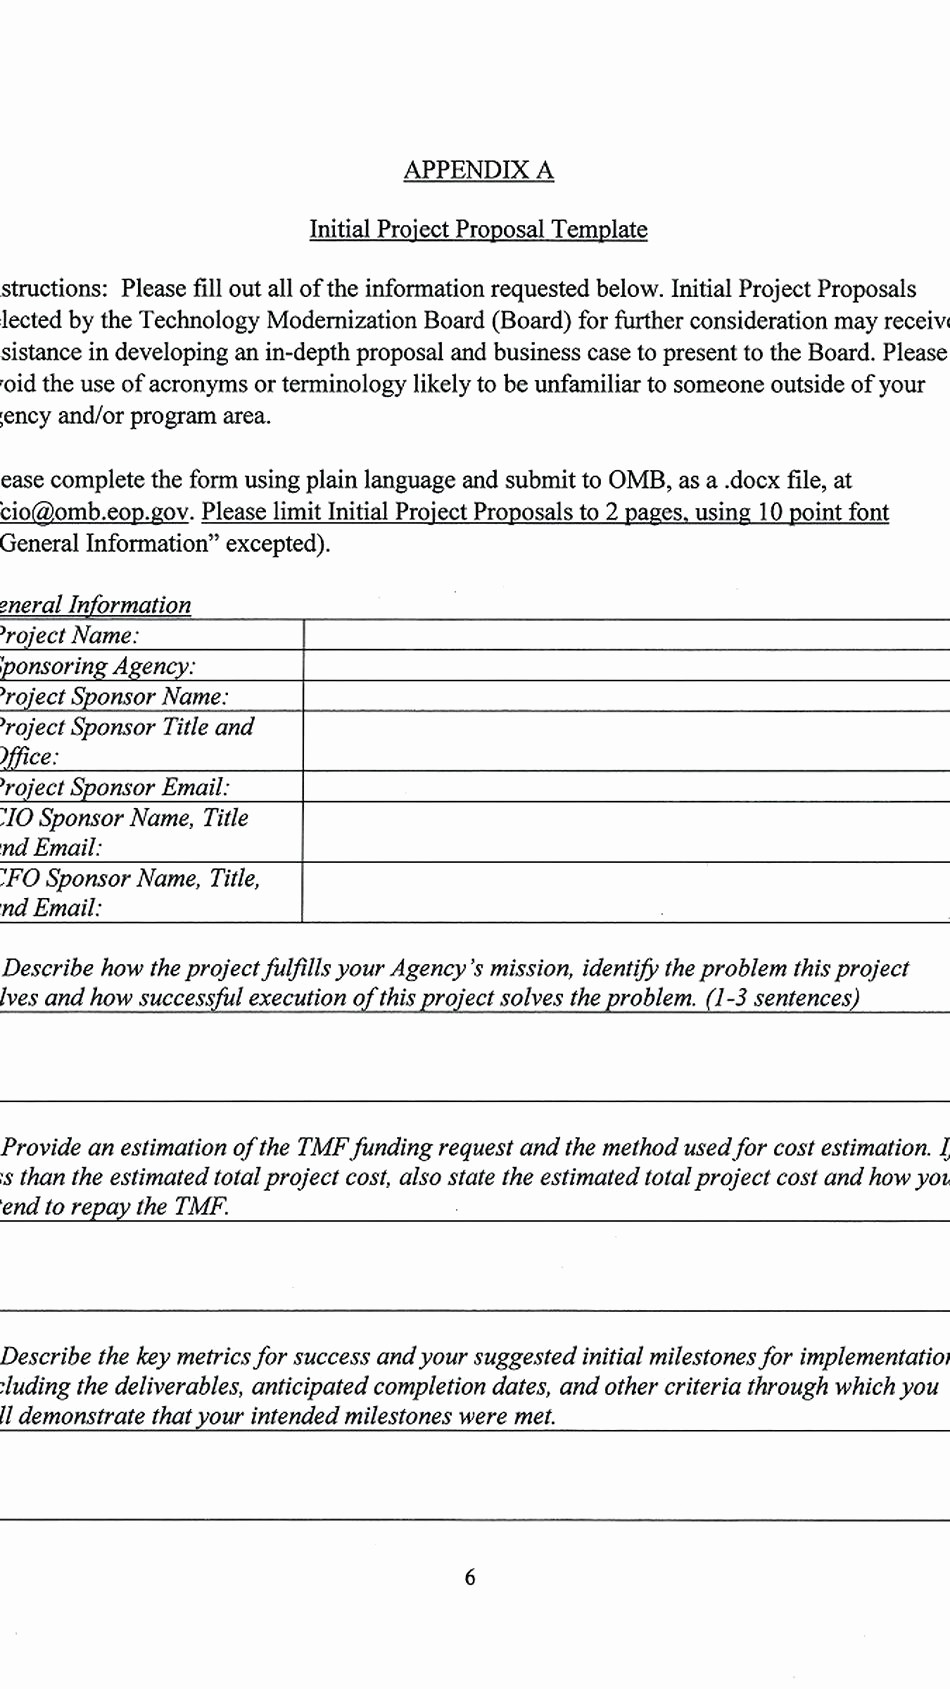 Request for Funds form Template Awesome Template Request for Funds Template